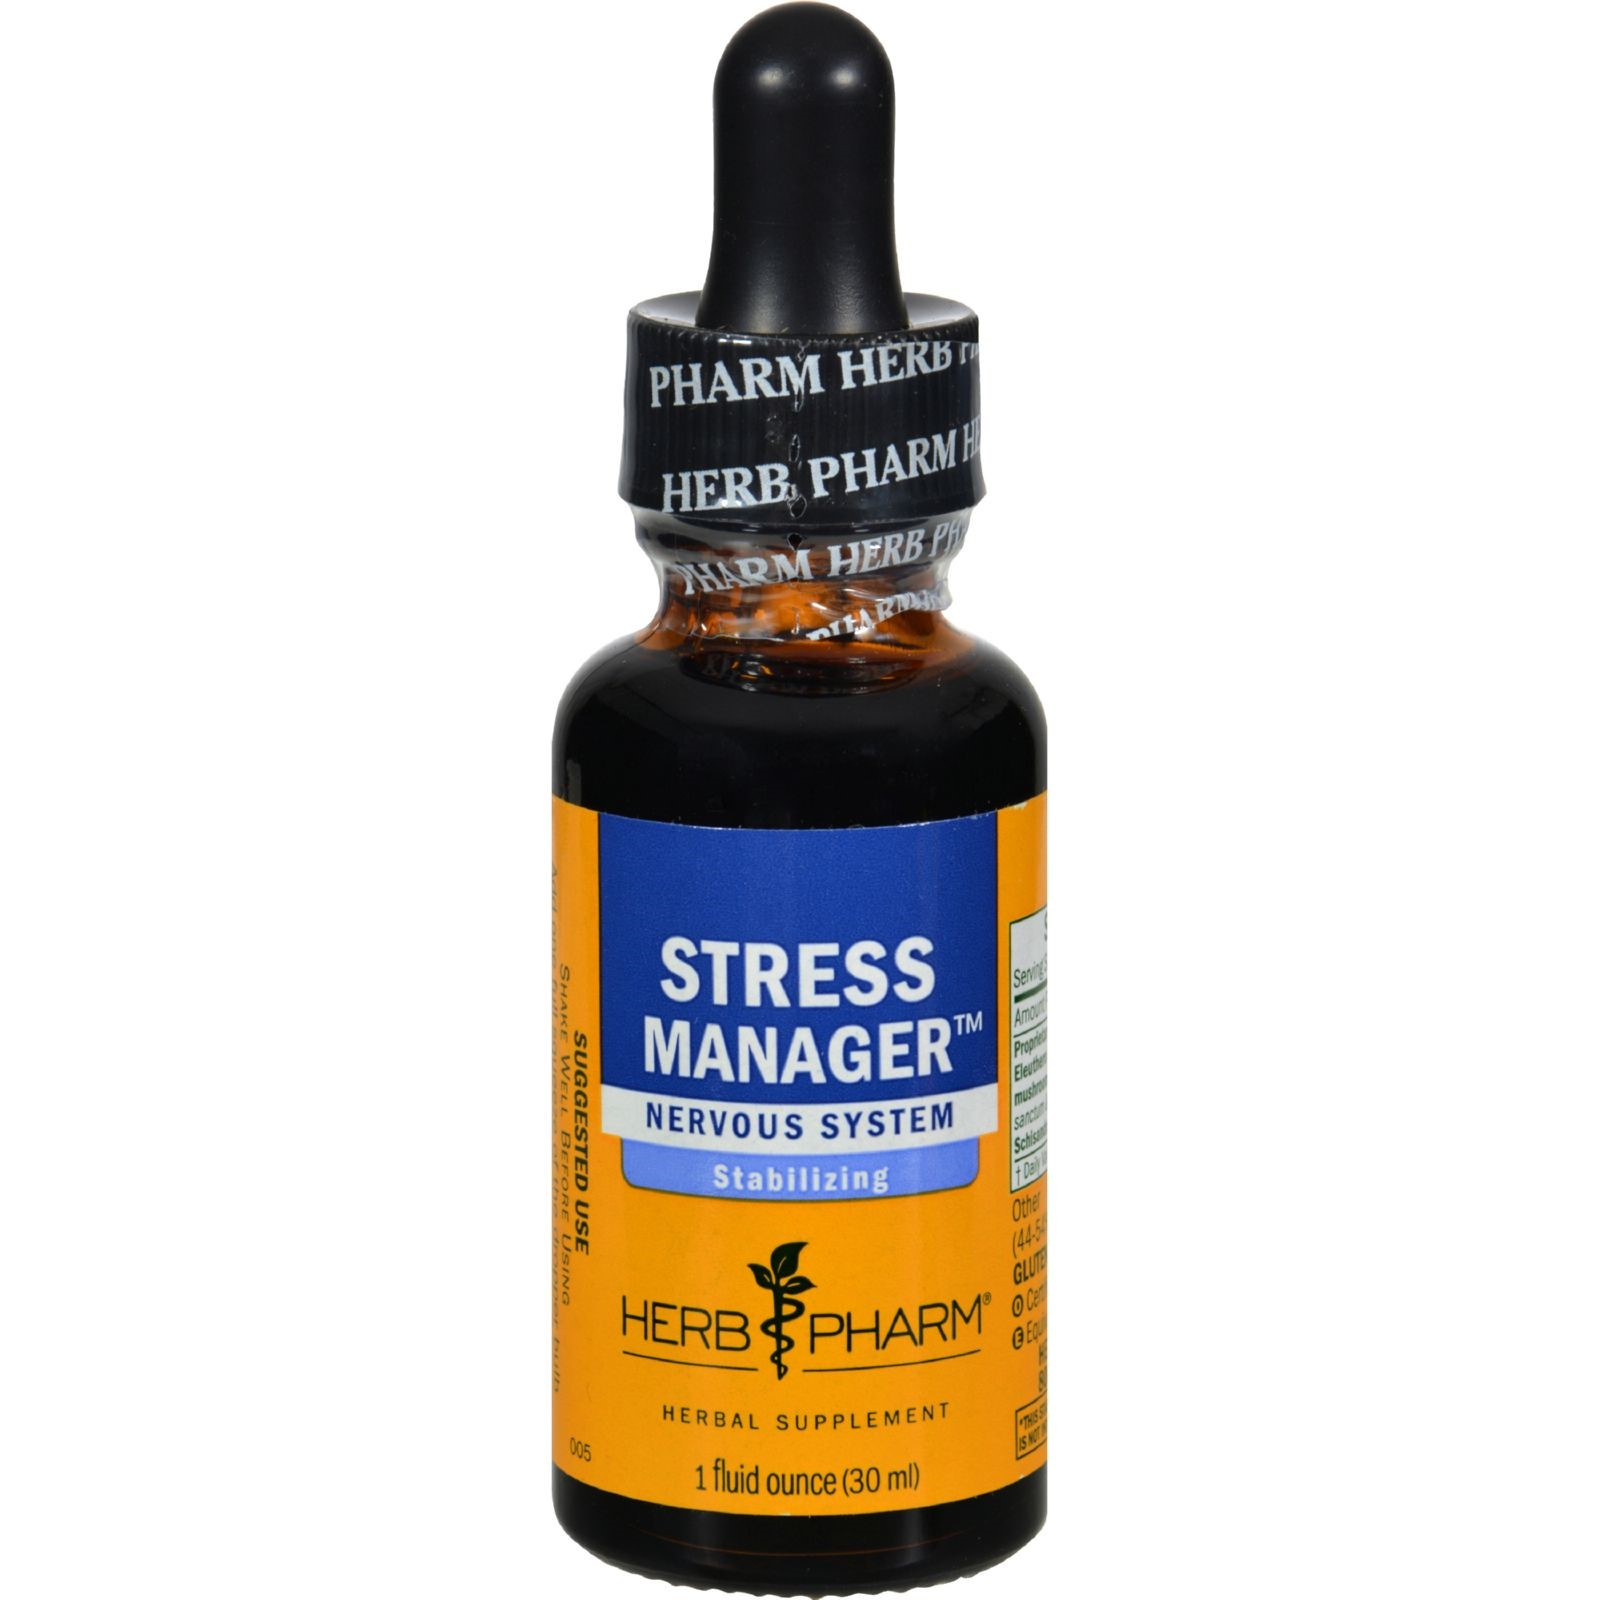 Stress Manager Compound Herb Pharm 1 Ounce Liquid